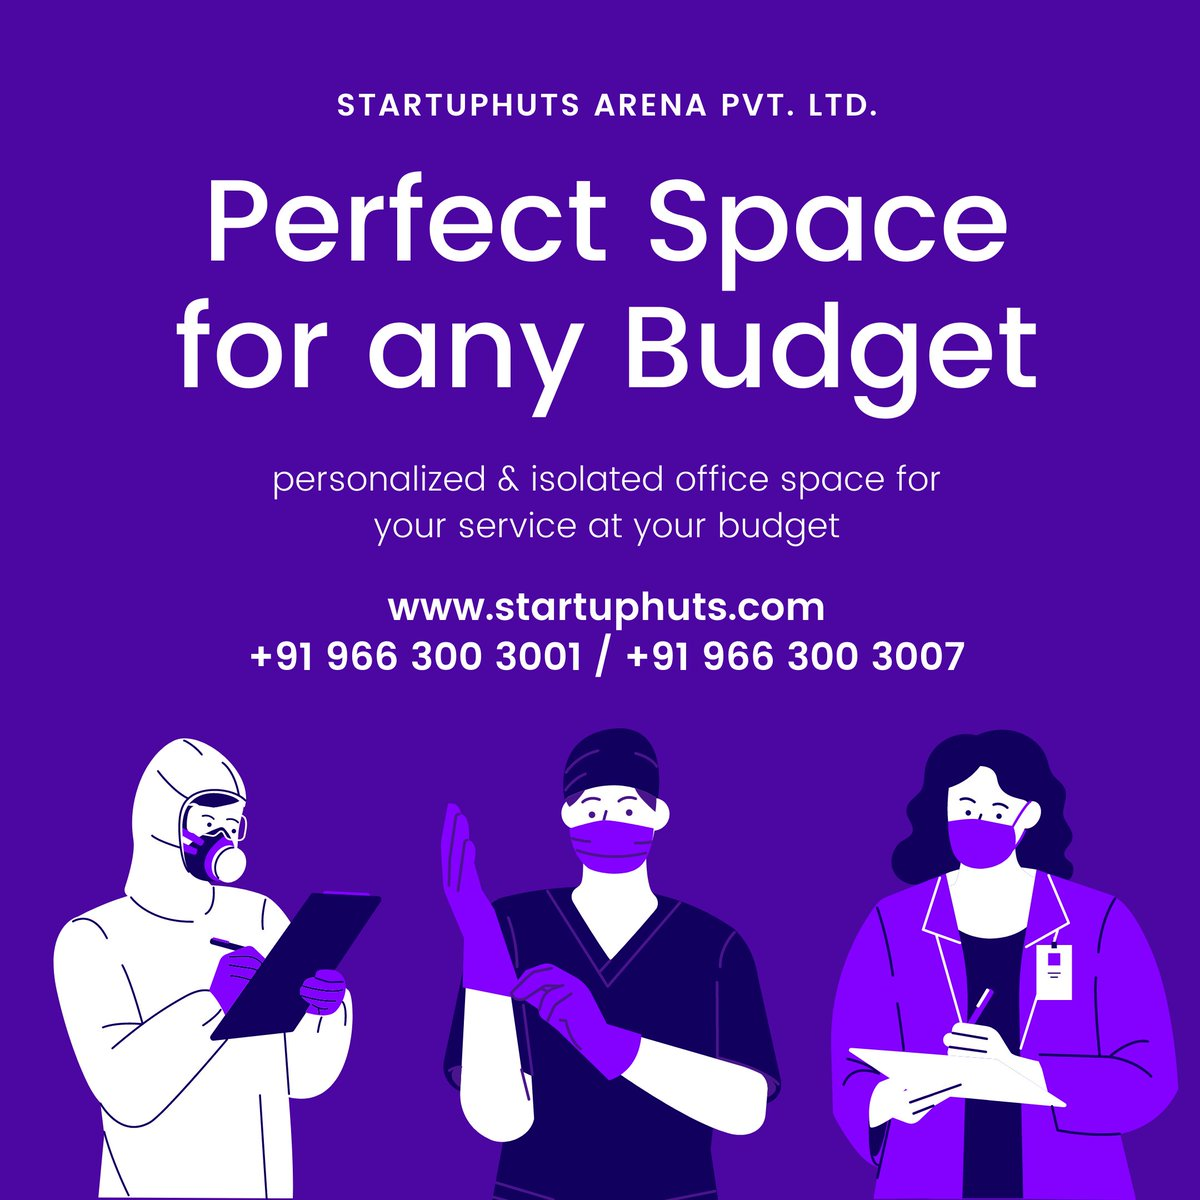 """""""Perfect space for any Budget """"  http:// startuphuts.com     #WednesdayThoughts #WednesdayWisdom  #coworkingspace #sharedoffice #startuphuts #startups #business  #startupbusiness #Twitter #isolated #personalised #Services #lowbudget<br>http://pic.twitter.com/JNBqDjwenn"""